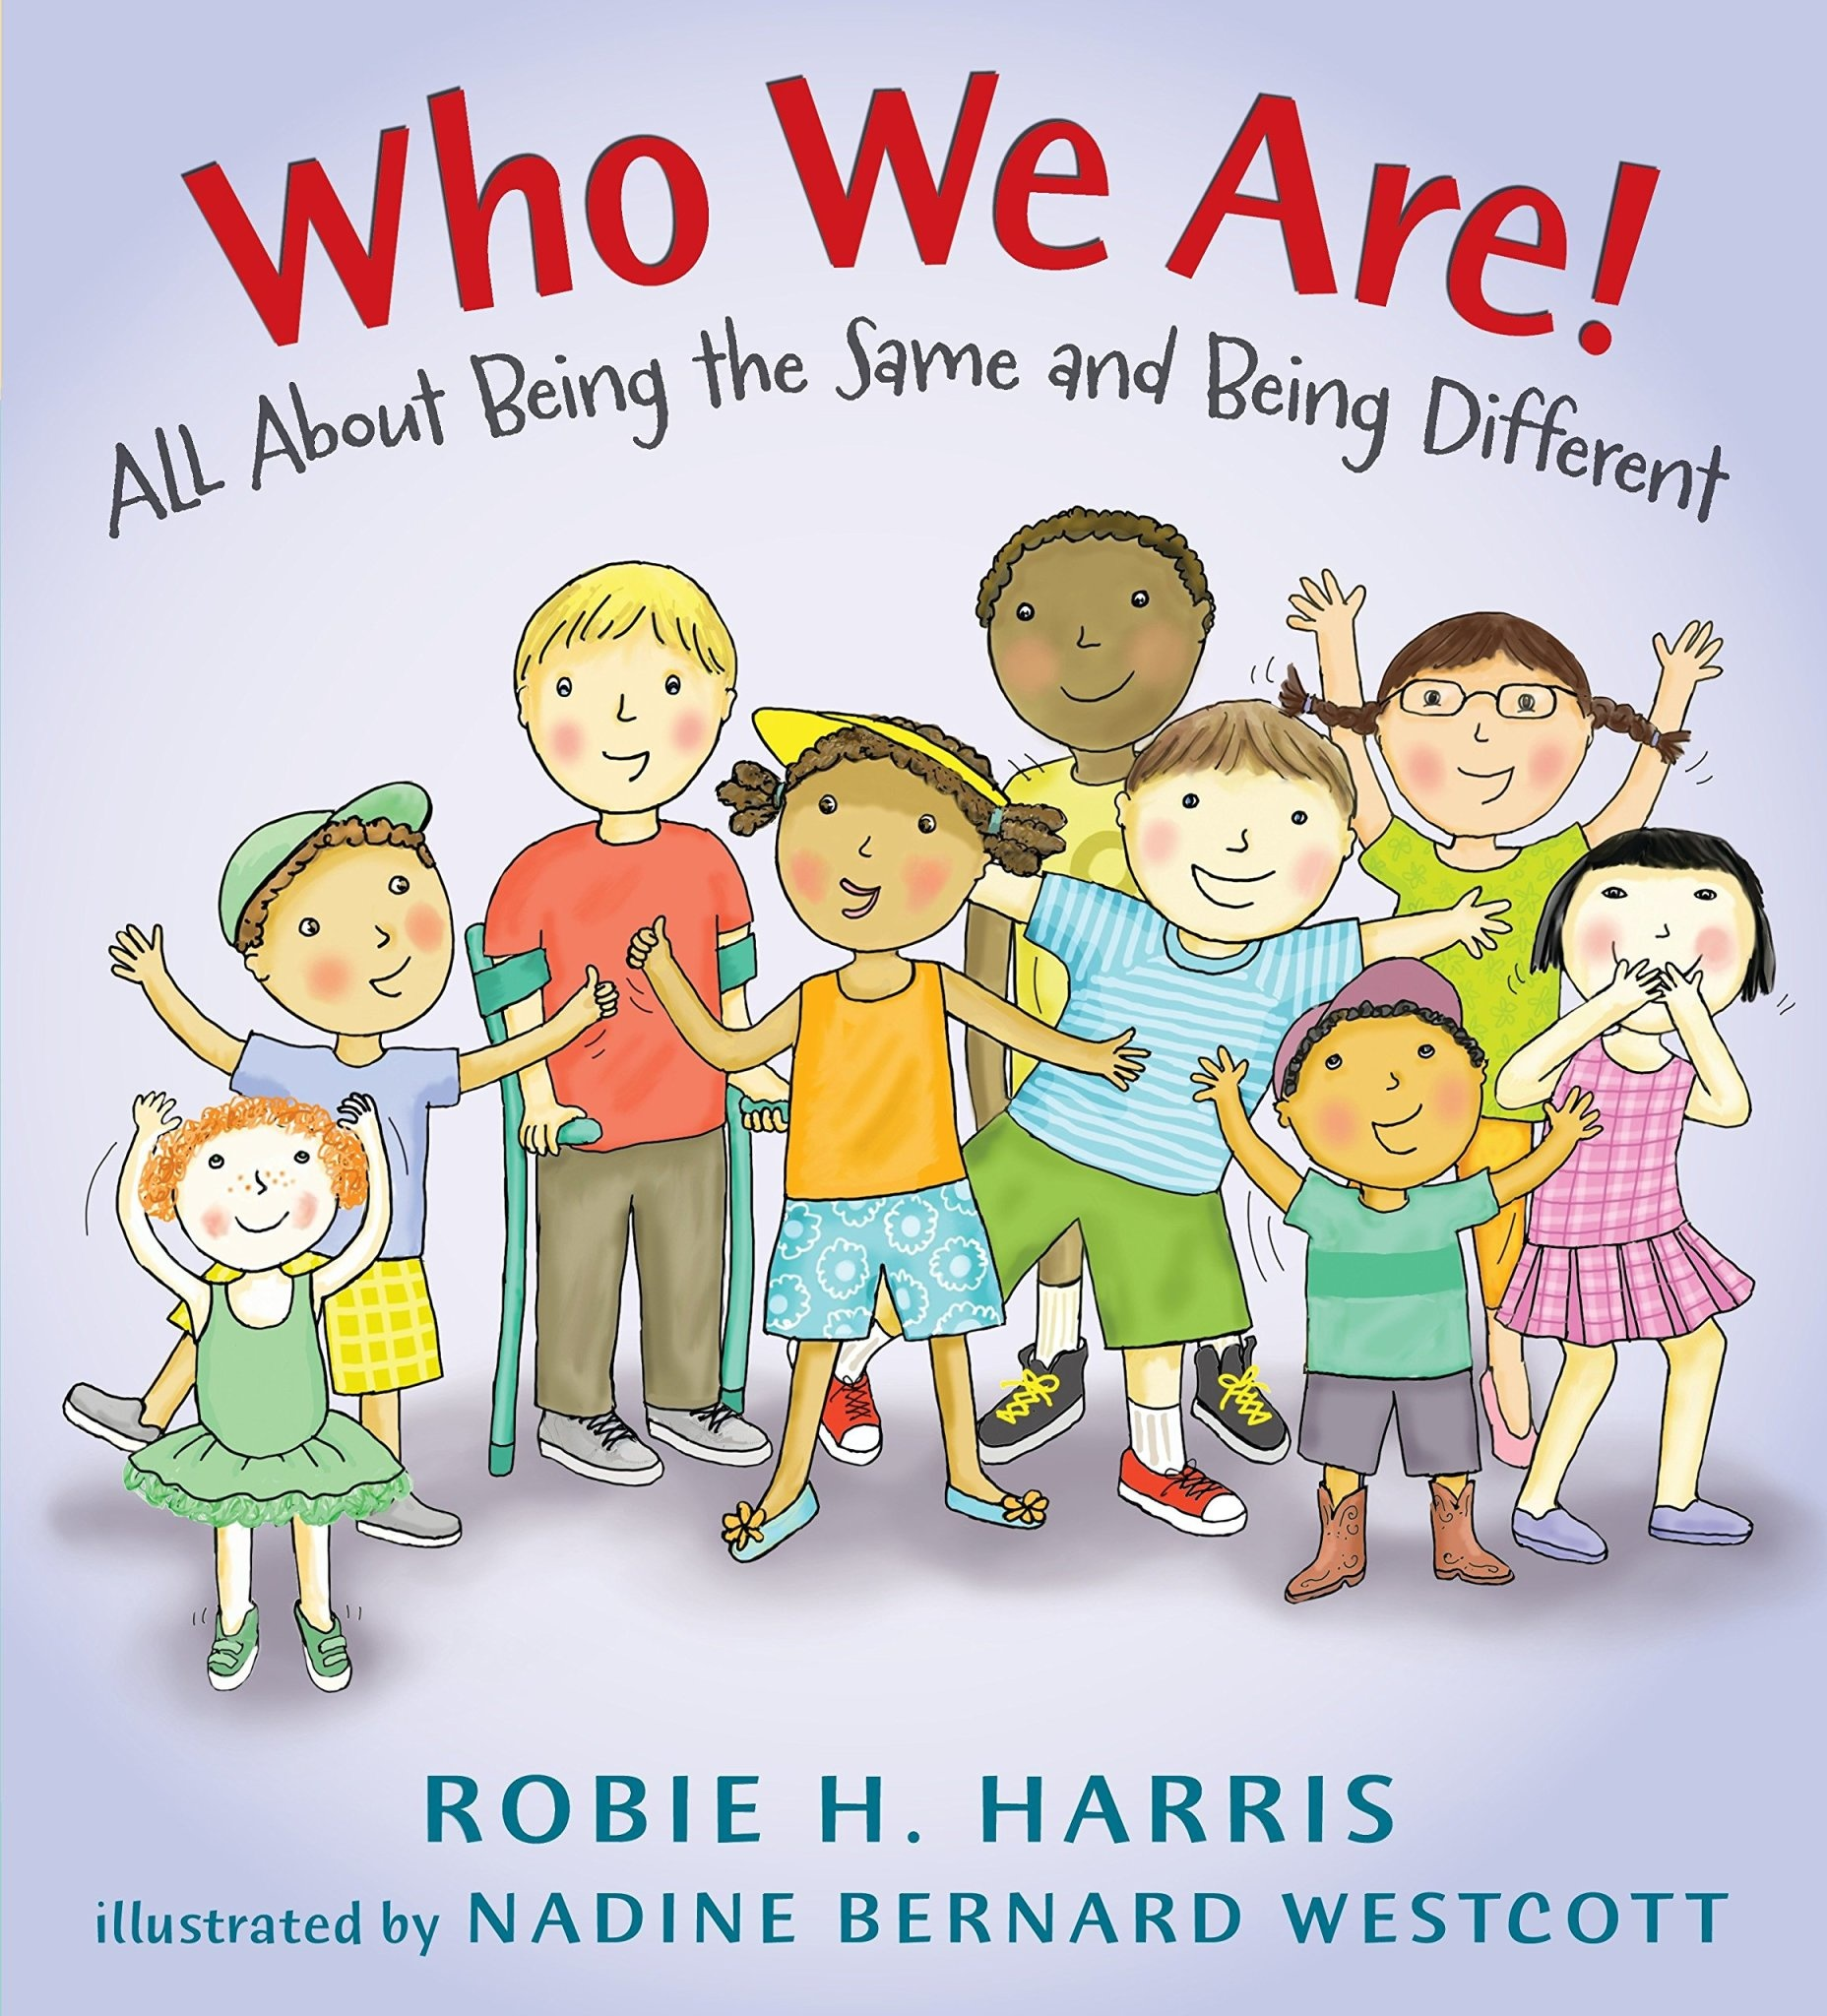 Who We Are! All About Being the Same and Being Different by Robie Harris (ages 2-5 years)